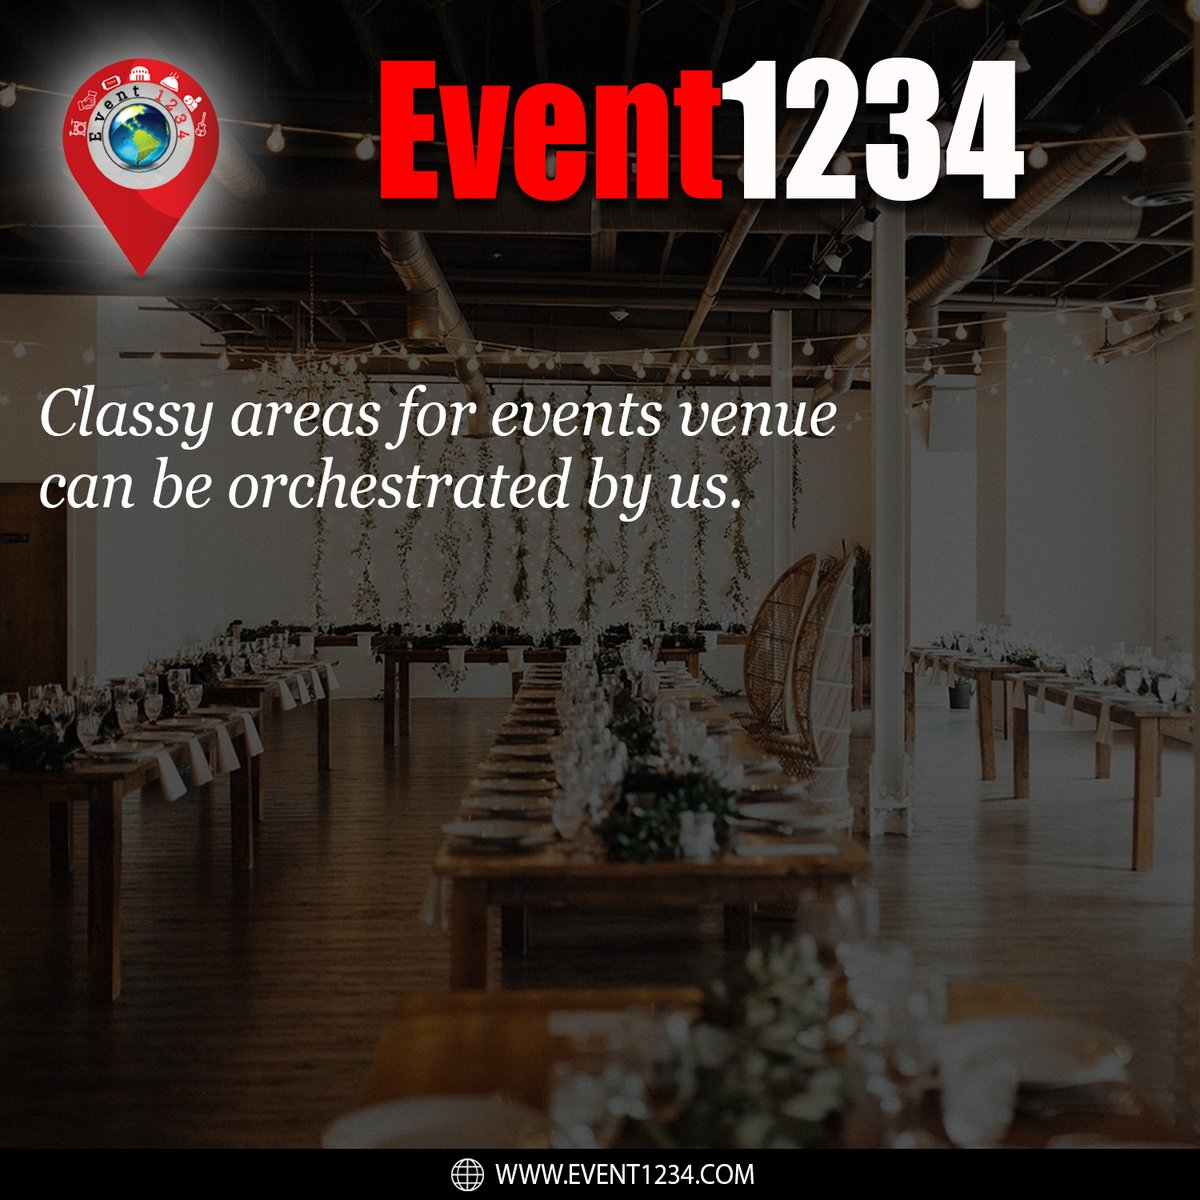 Classy areas for events venue can be orchestrated by us.  The Wait Will Be Over Soon... ♥️  #event1234 #events #venue #artist #sponser #sponsers #buying #selling #tickets #ticket #place #beautifulplace #destination https://t.co/G0BrD3V1w3